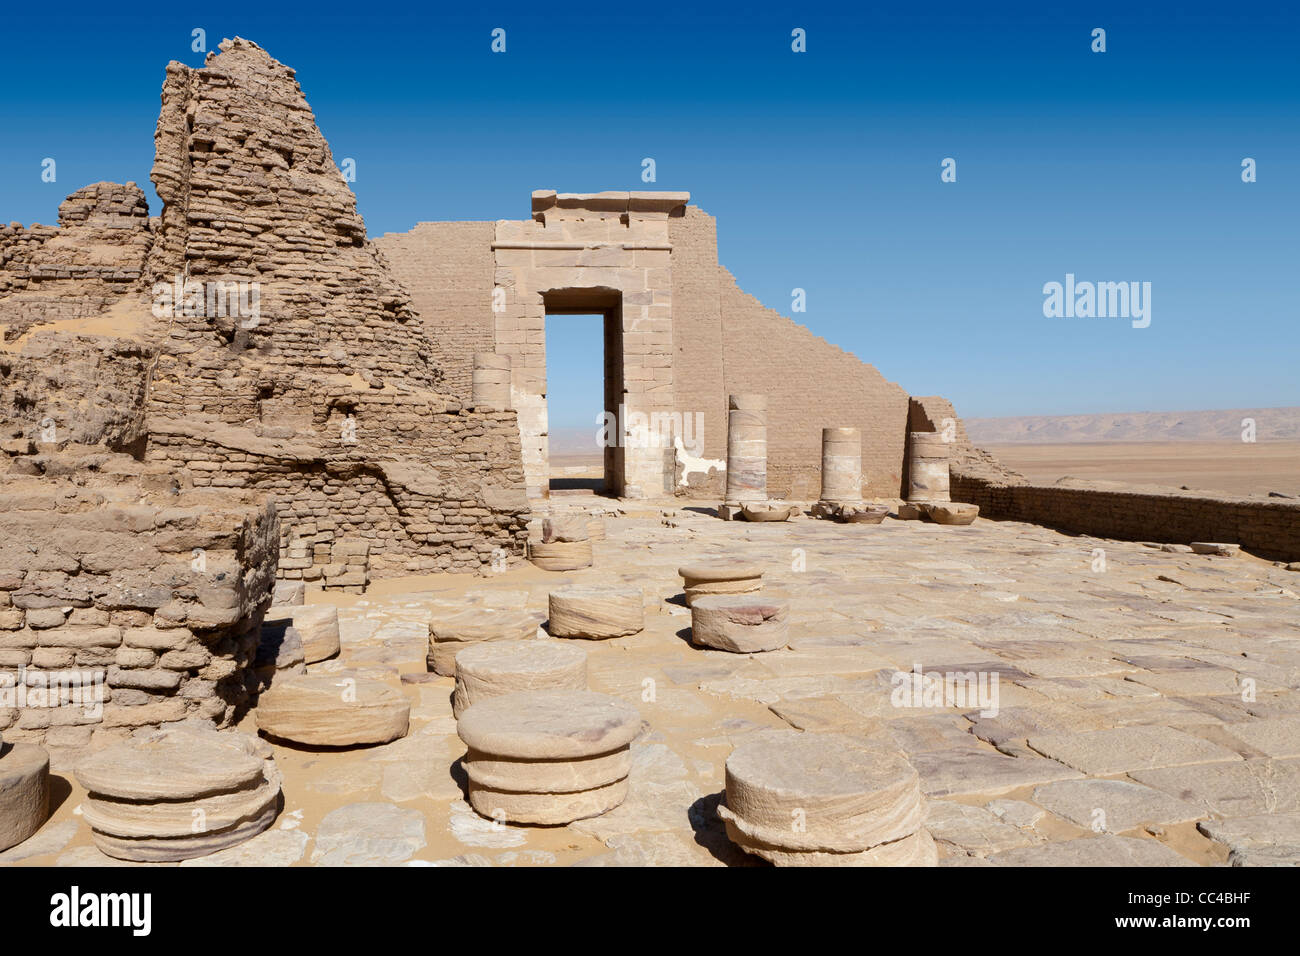 The Roman fortress and Temple of Dush, South of Kharga Oasis, Western Desert of Egypt - Stock Image